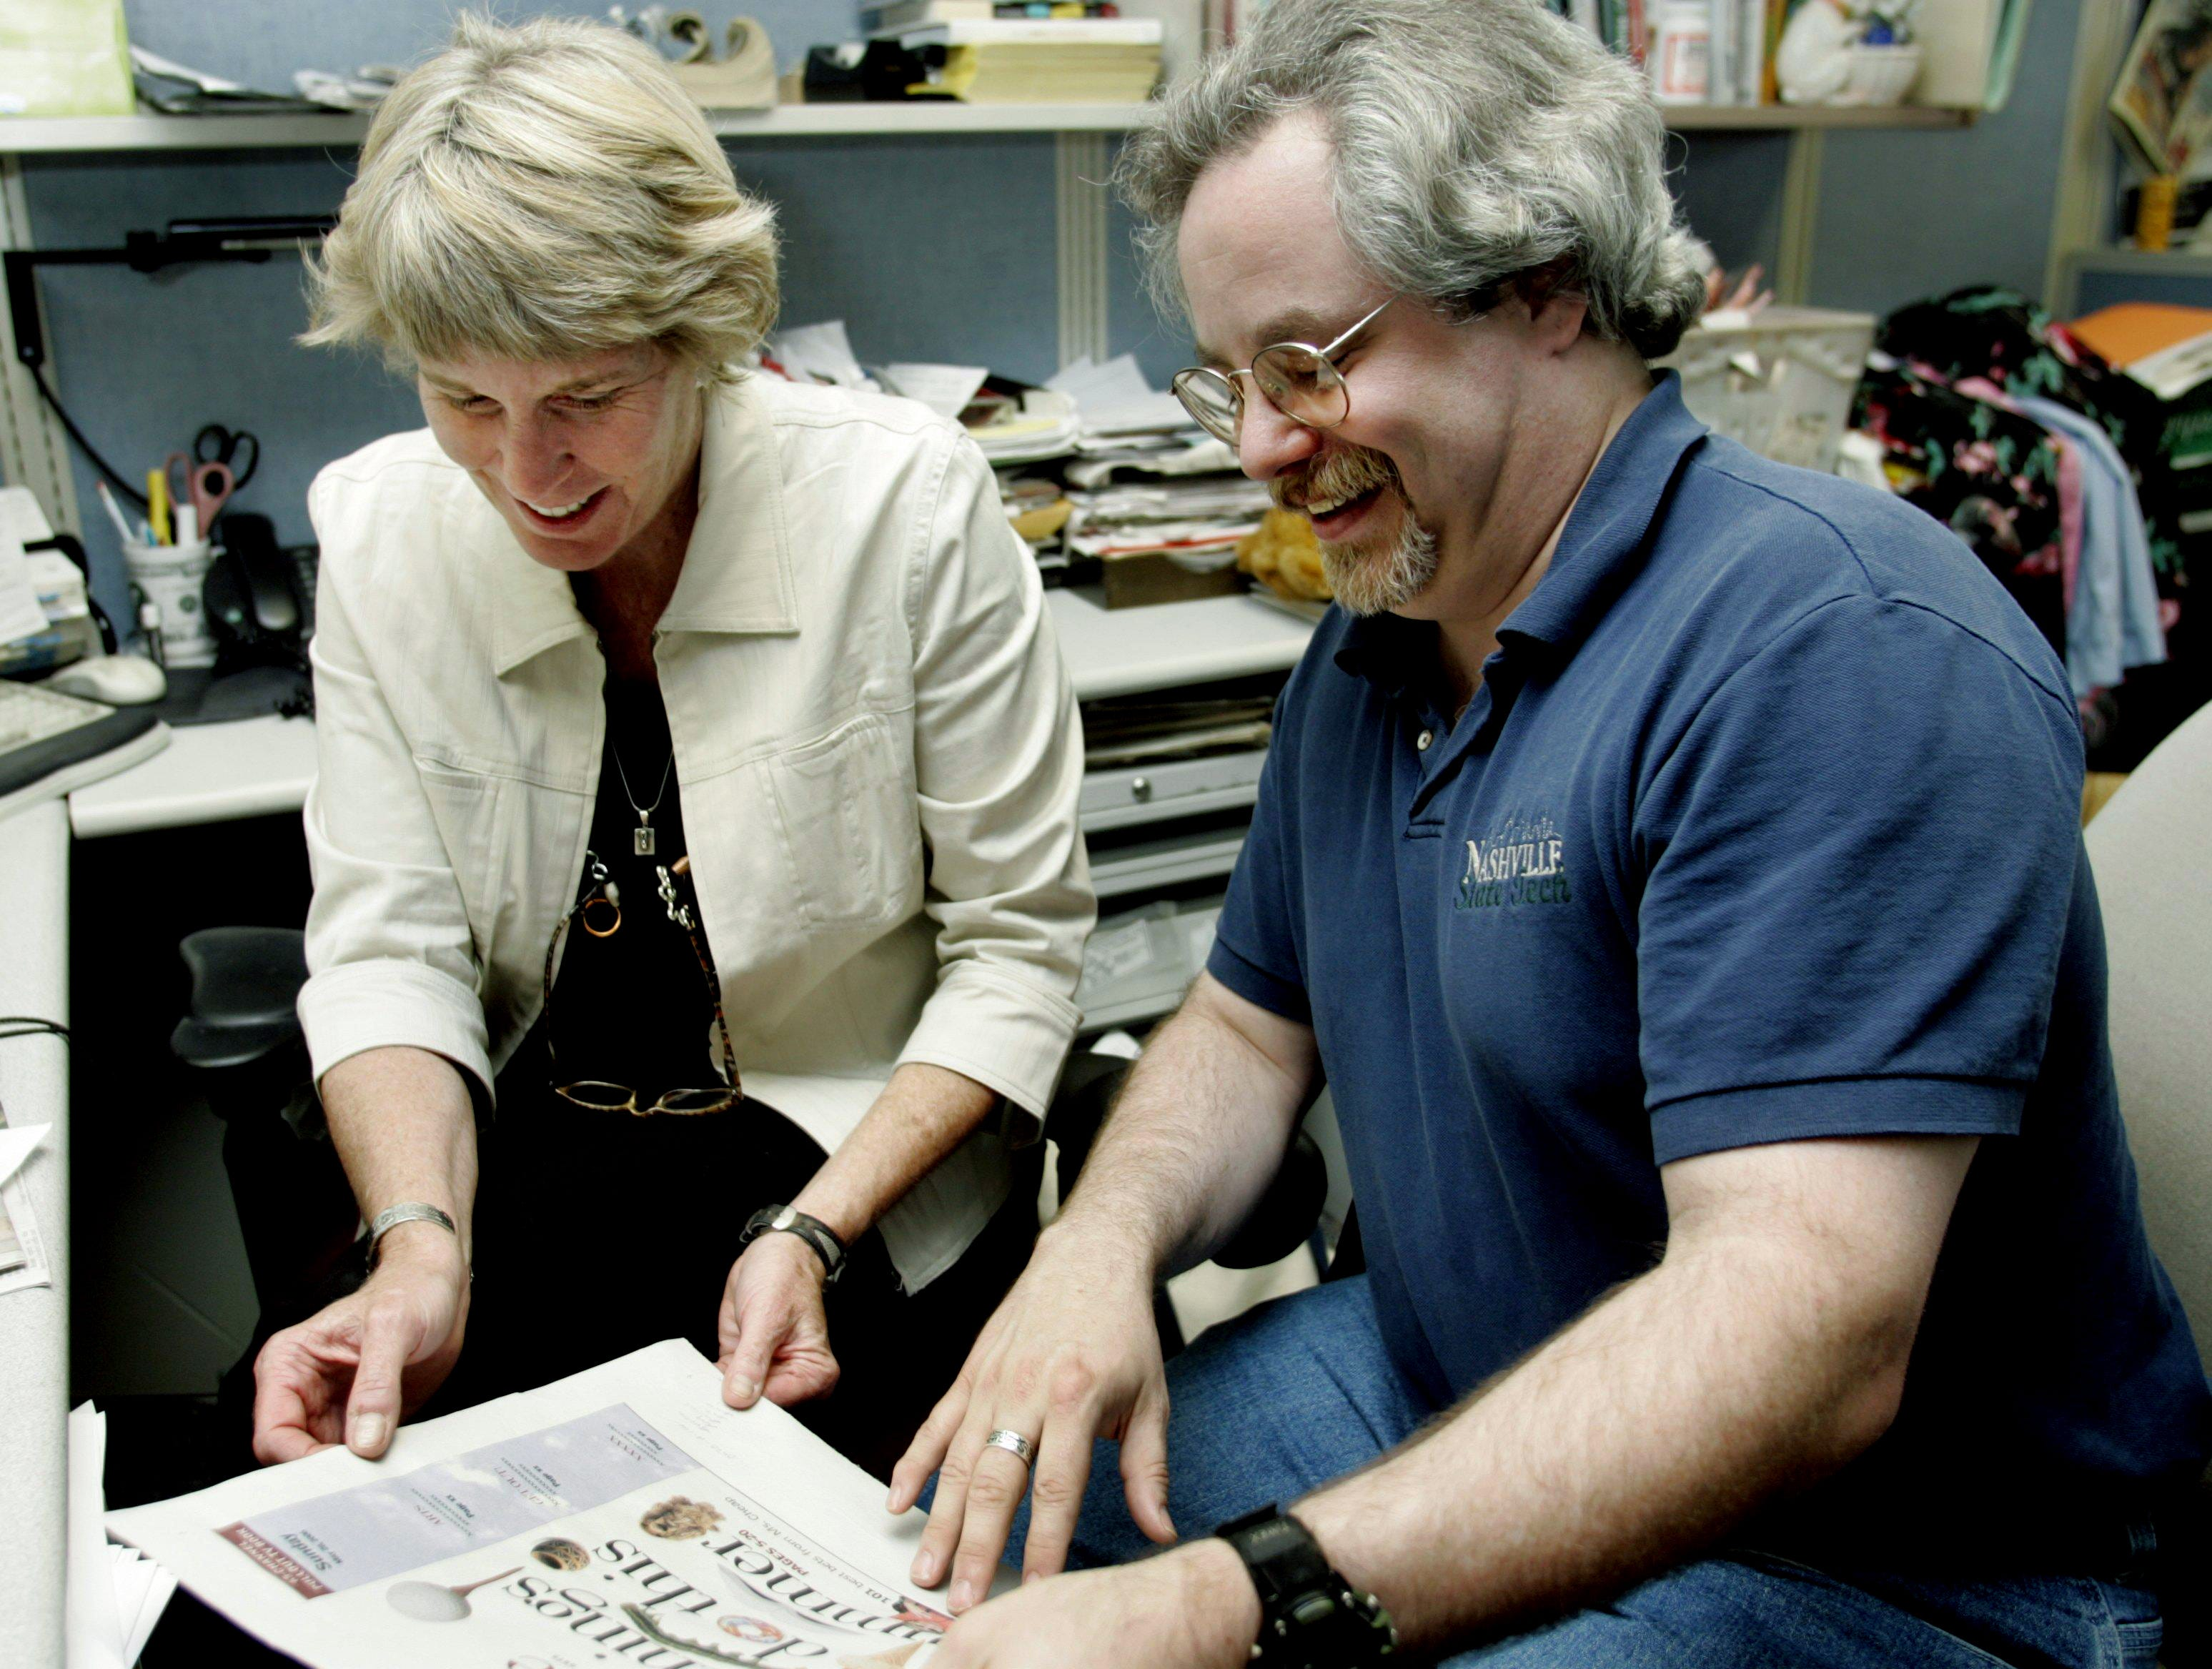 Ms. Cheap's Mary Hance works with her new apprentice Robert Overall III at The Tennessean's office May 25, 2006.